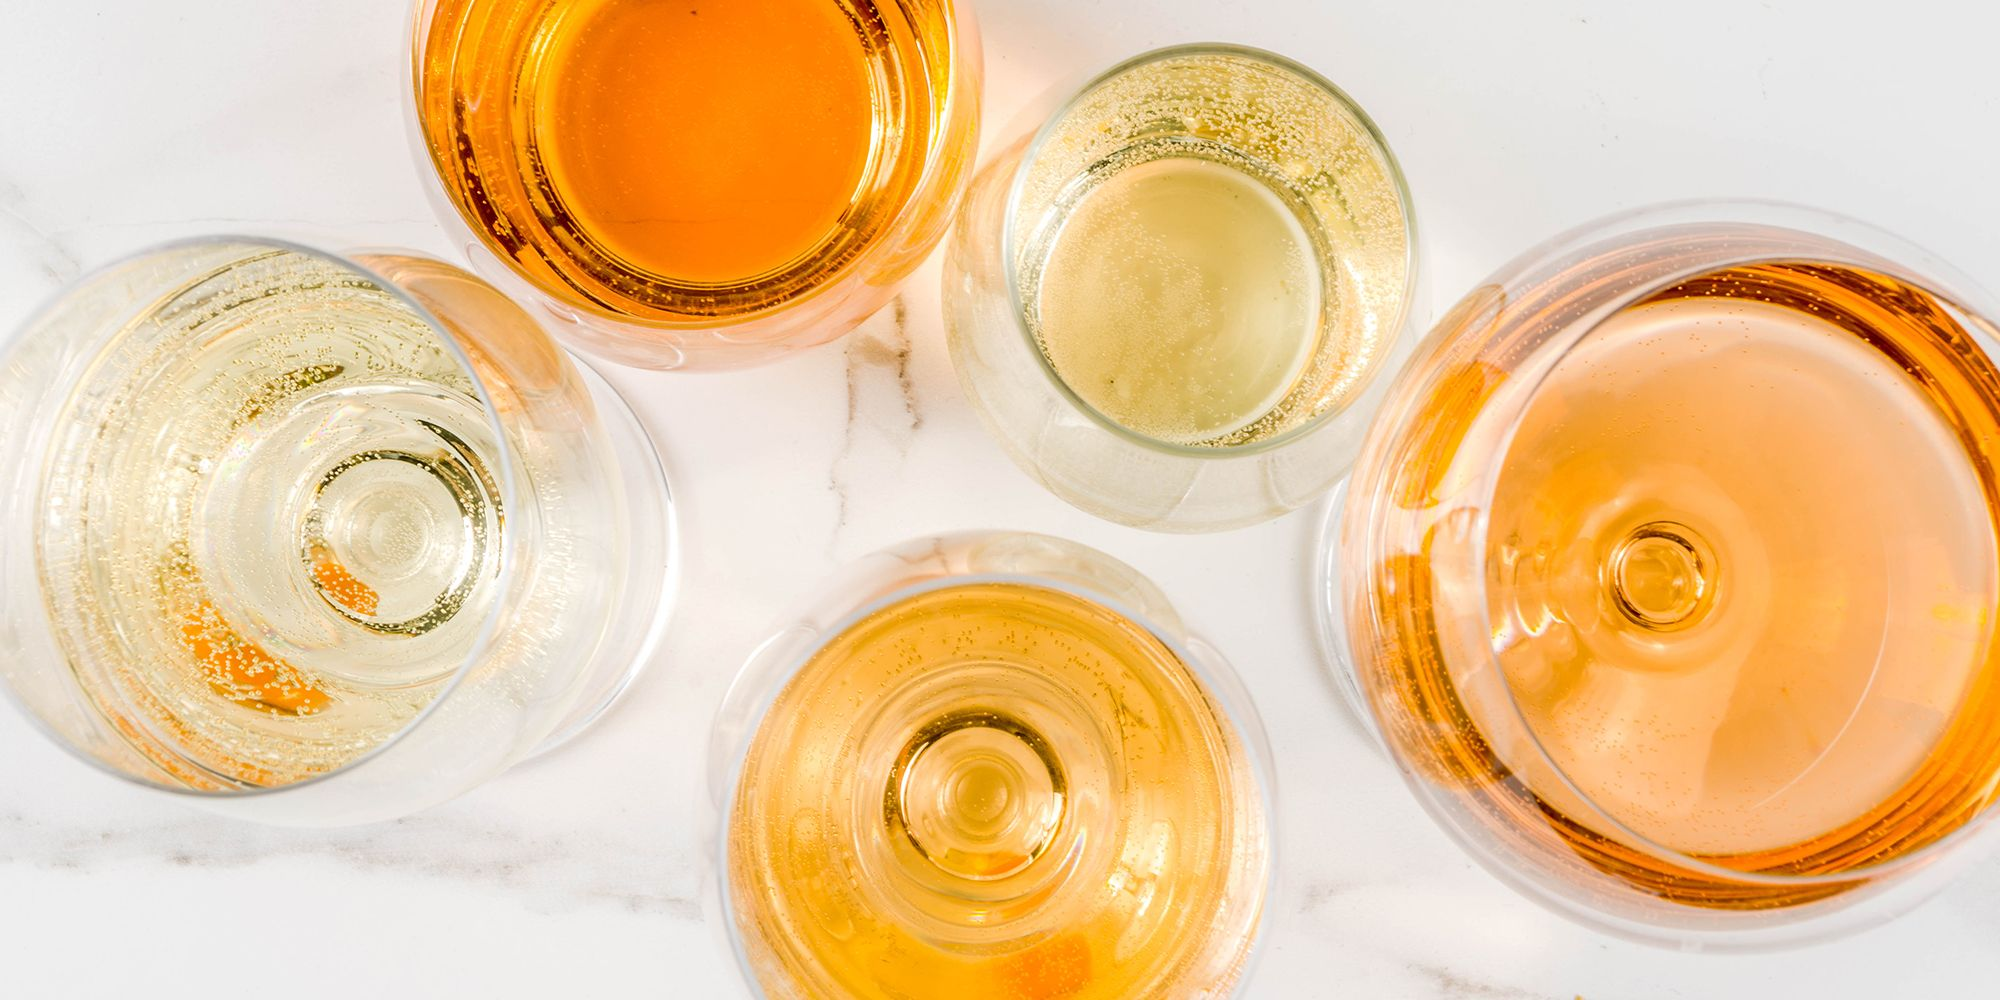 These Natural Orange Wines Are What We're Sipping This Fall